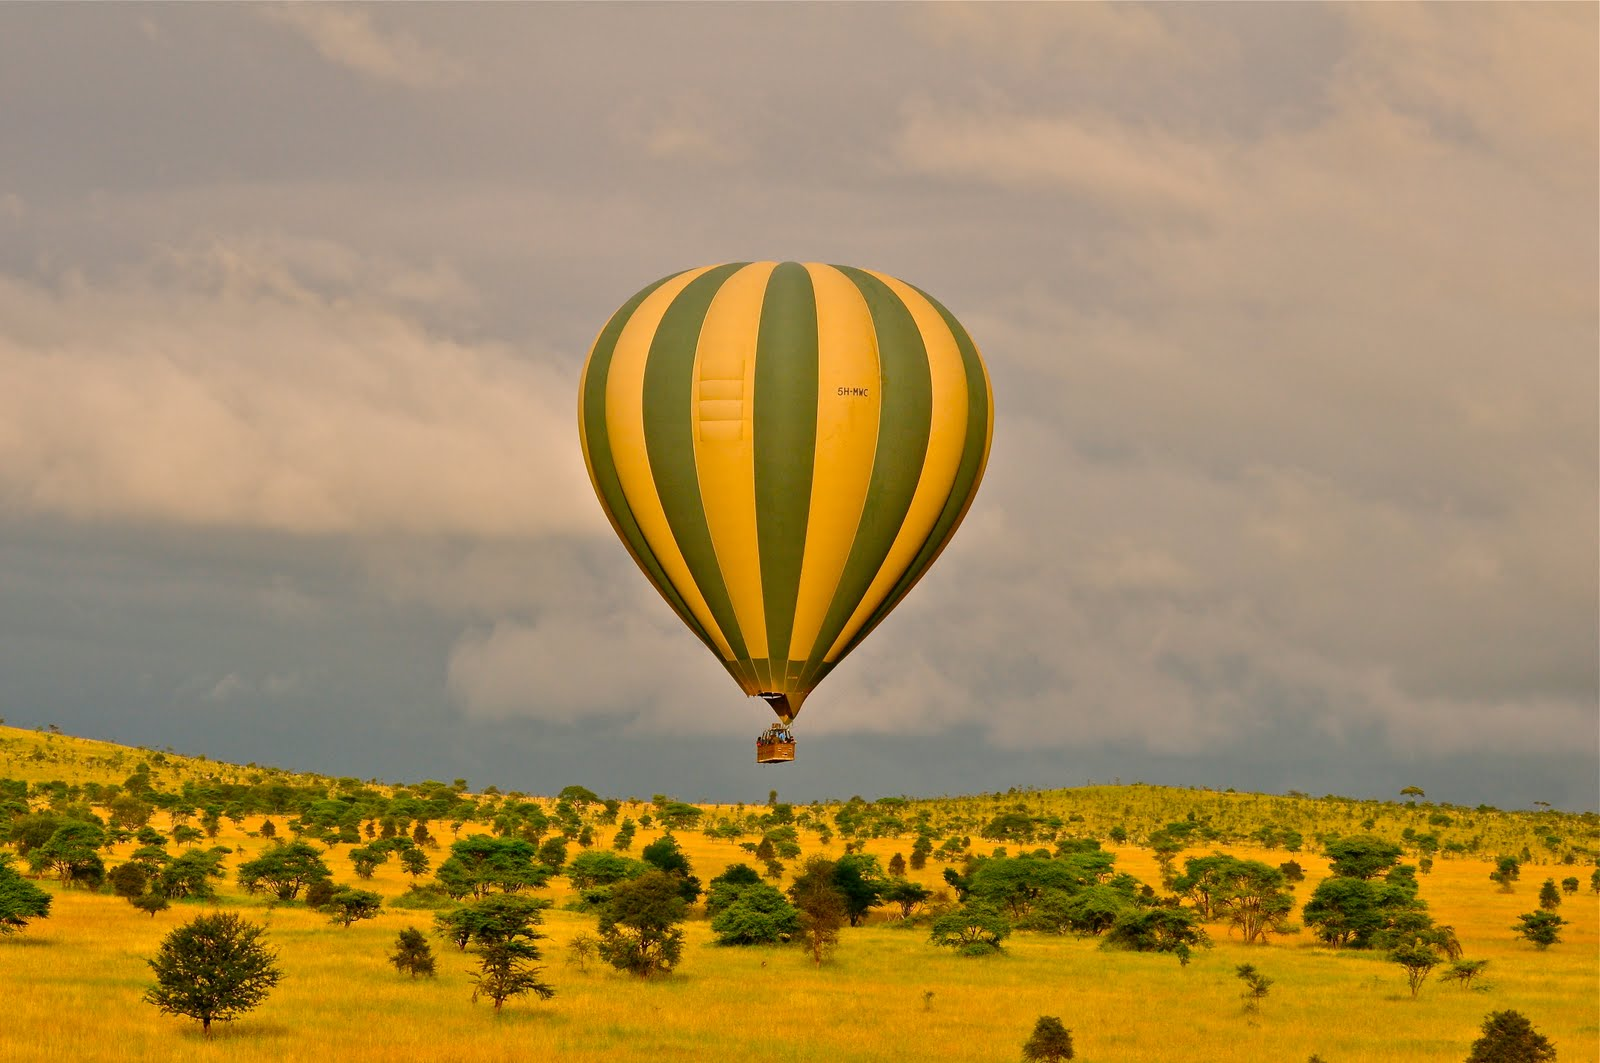 Balloon safaris in Serengeti National Park and Masai Mara